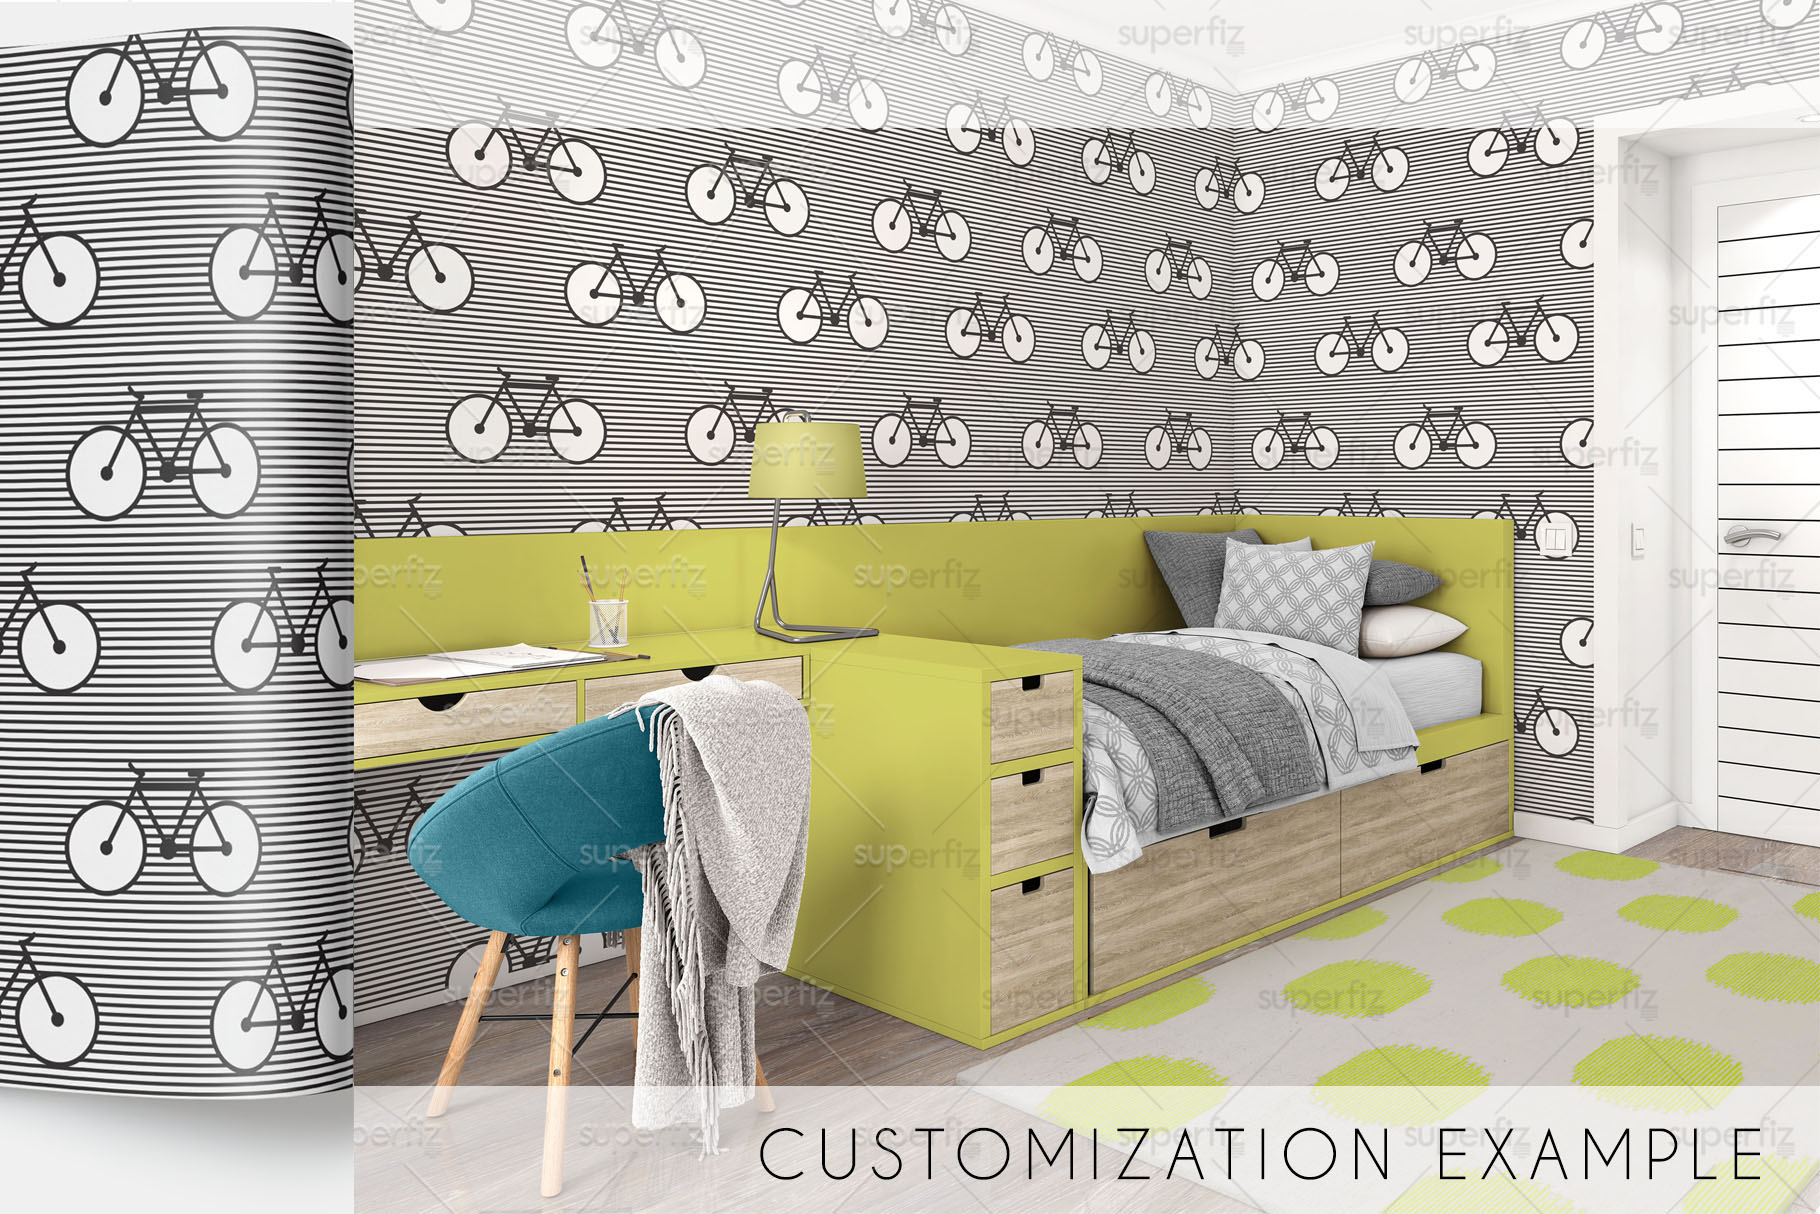 Wallpaper, floor and carpet Mockup Kids Bedroom SM62 example image 5